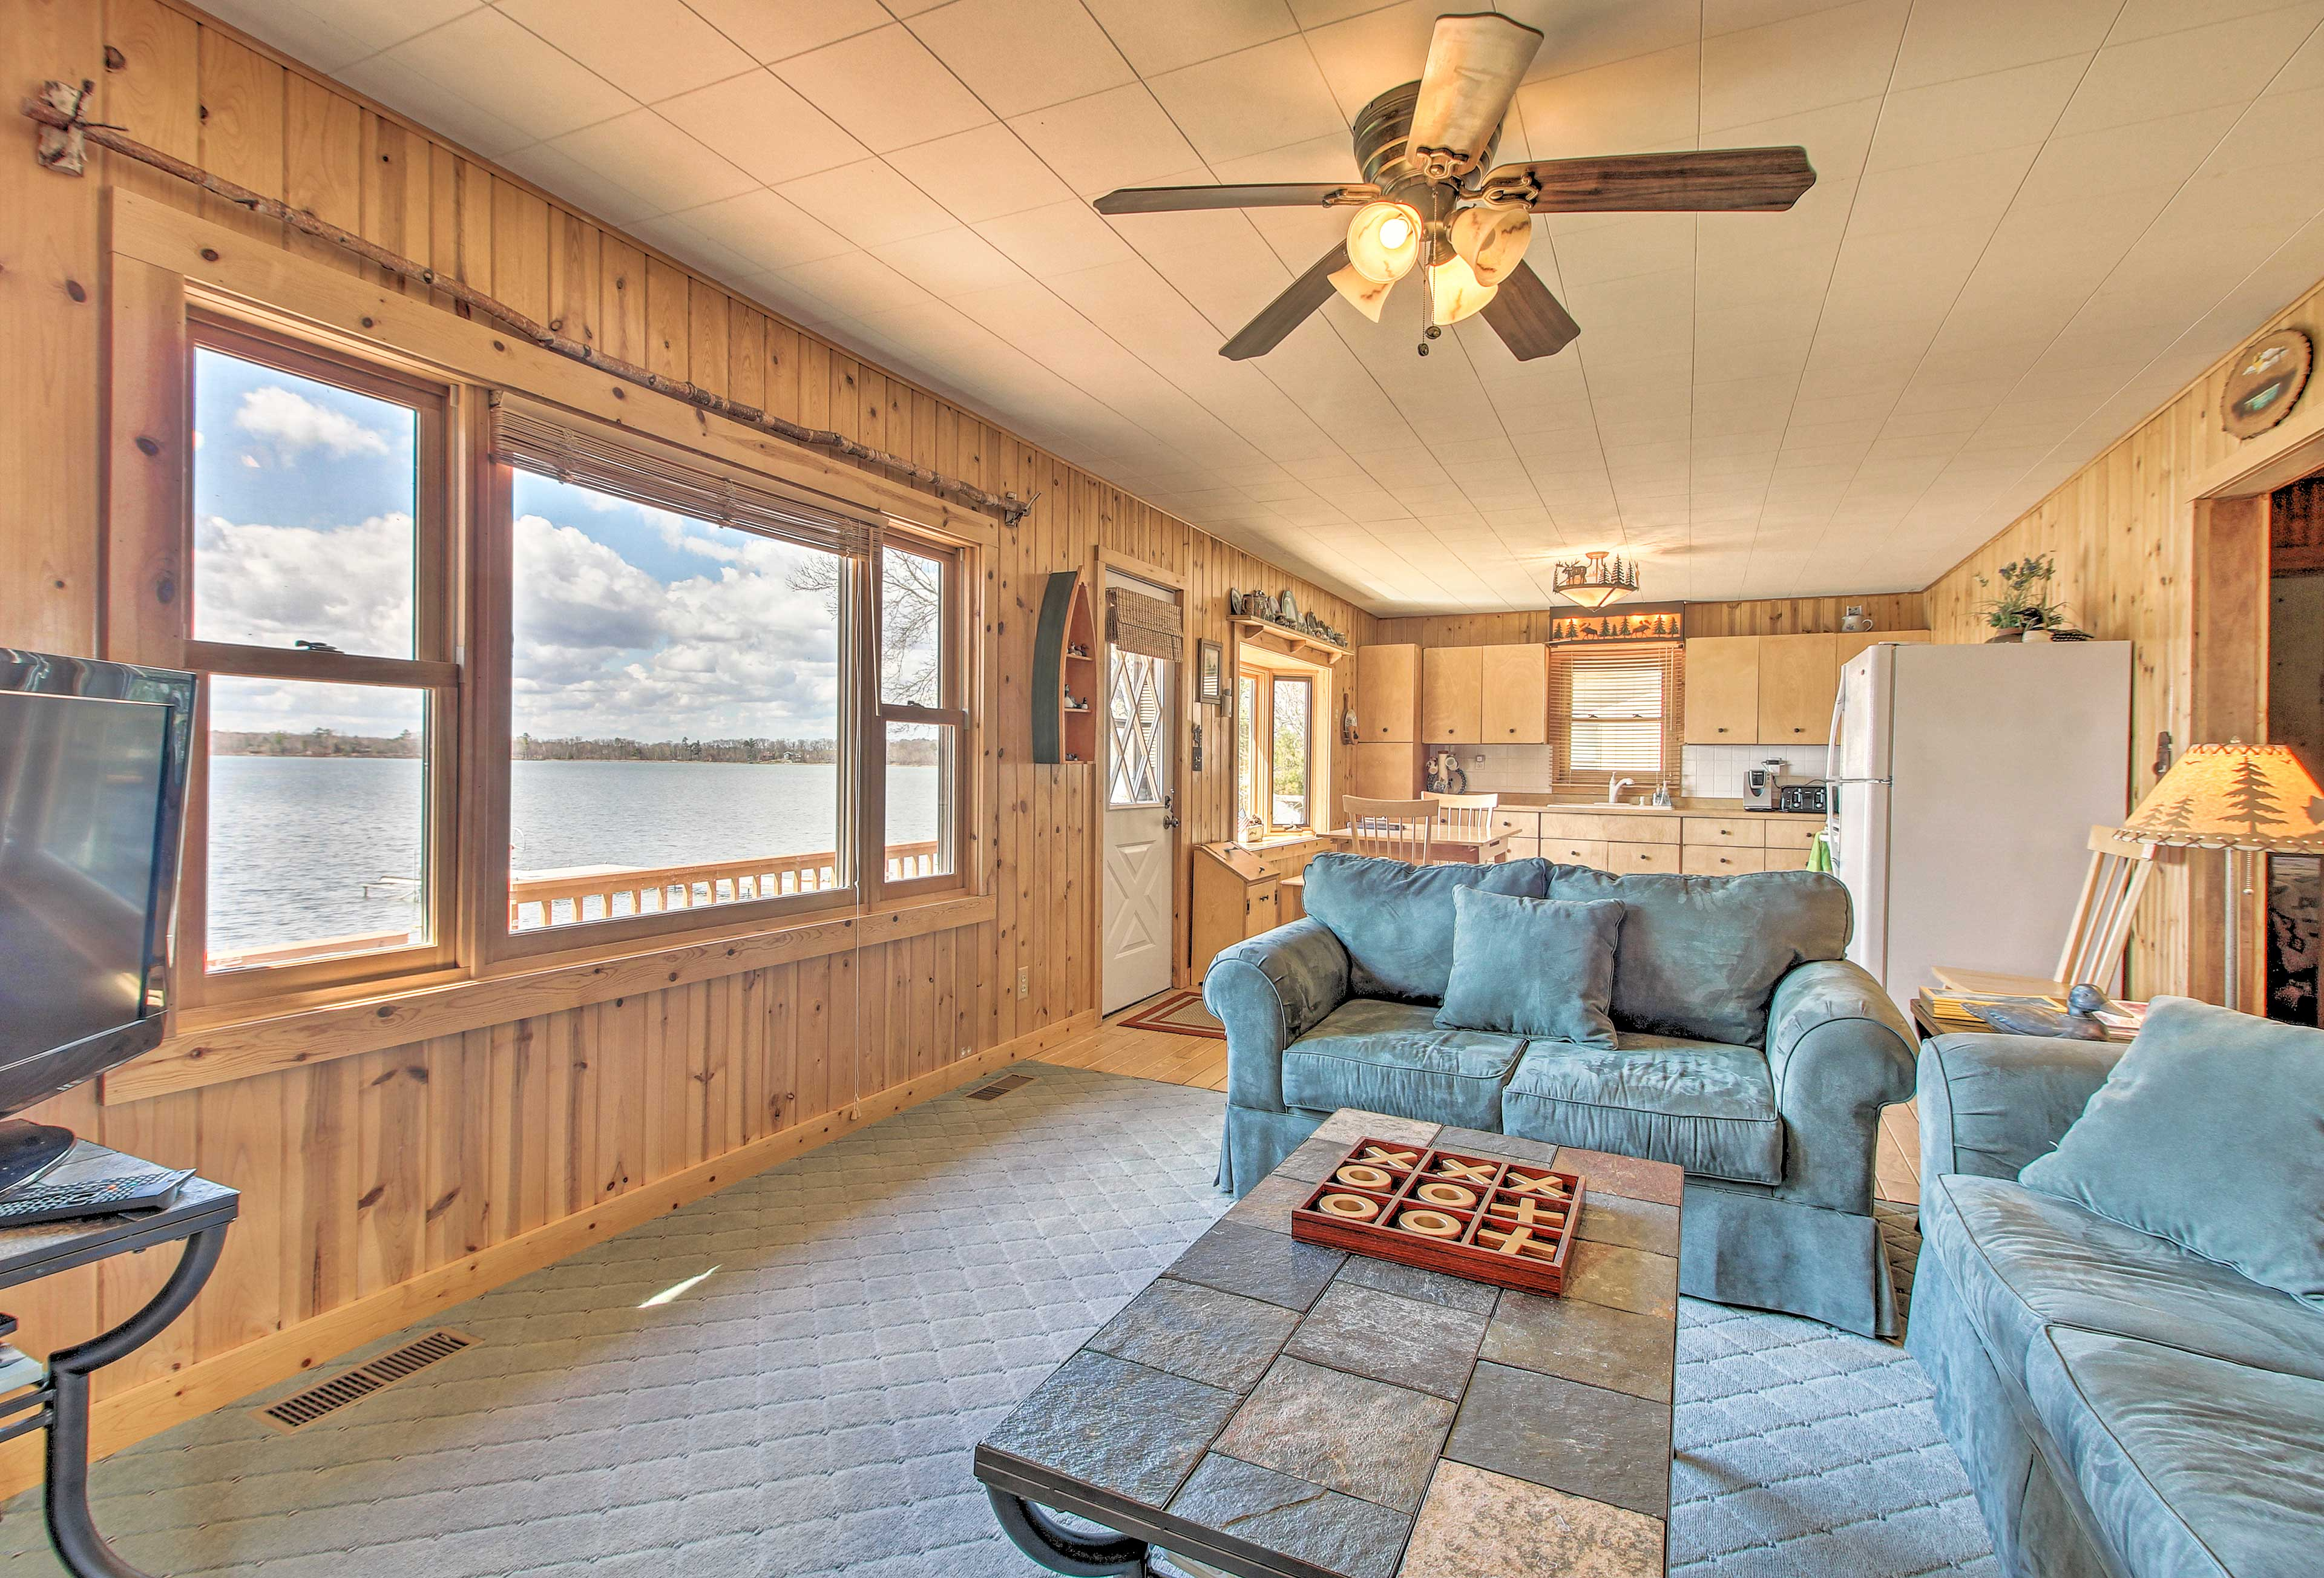 You'll have lake views from the comfort of the living room.